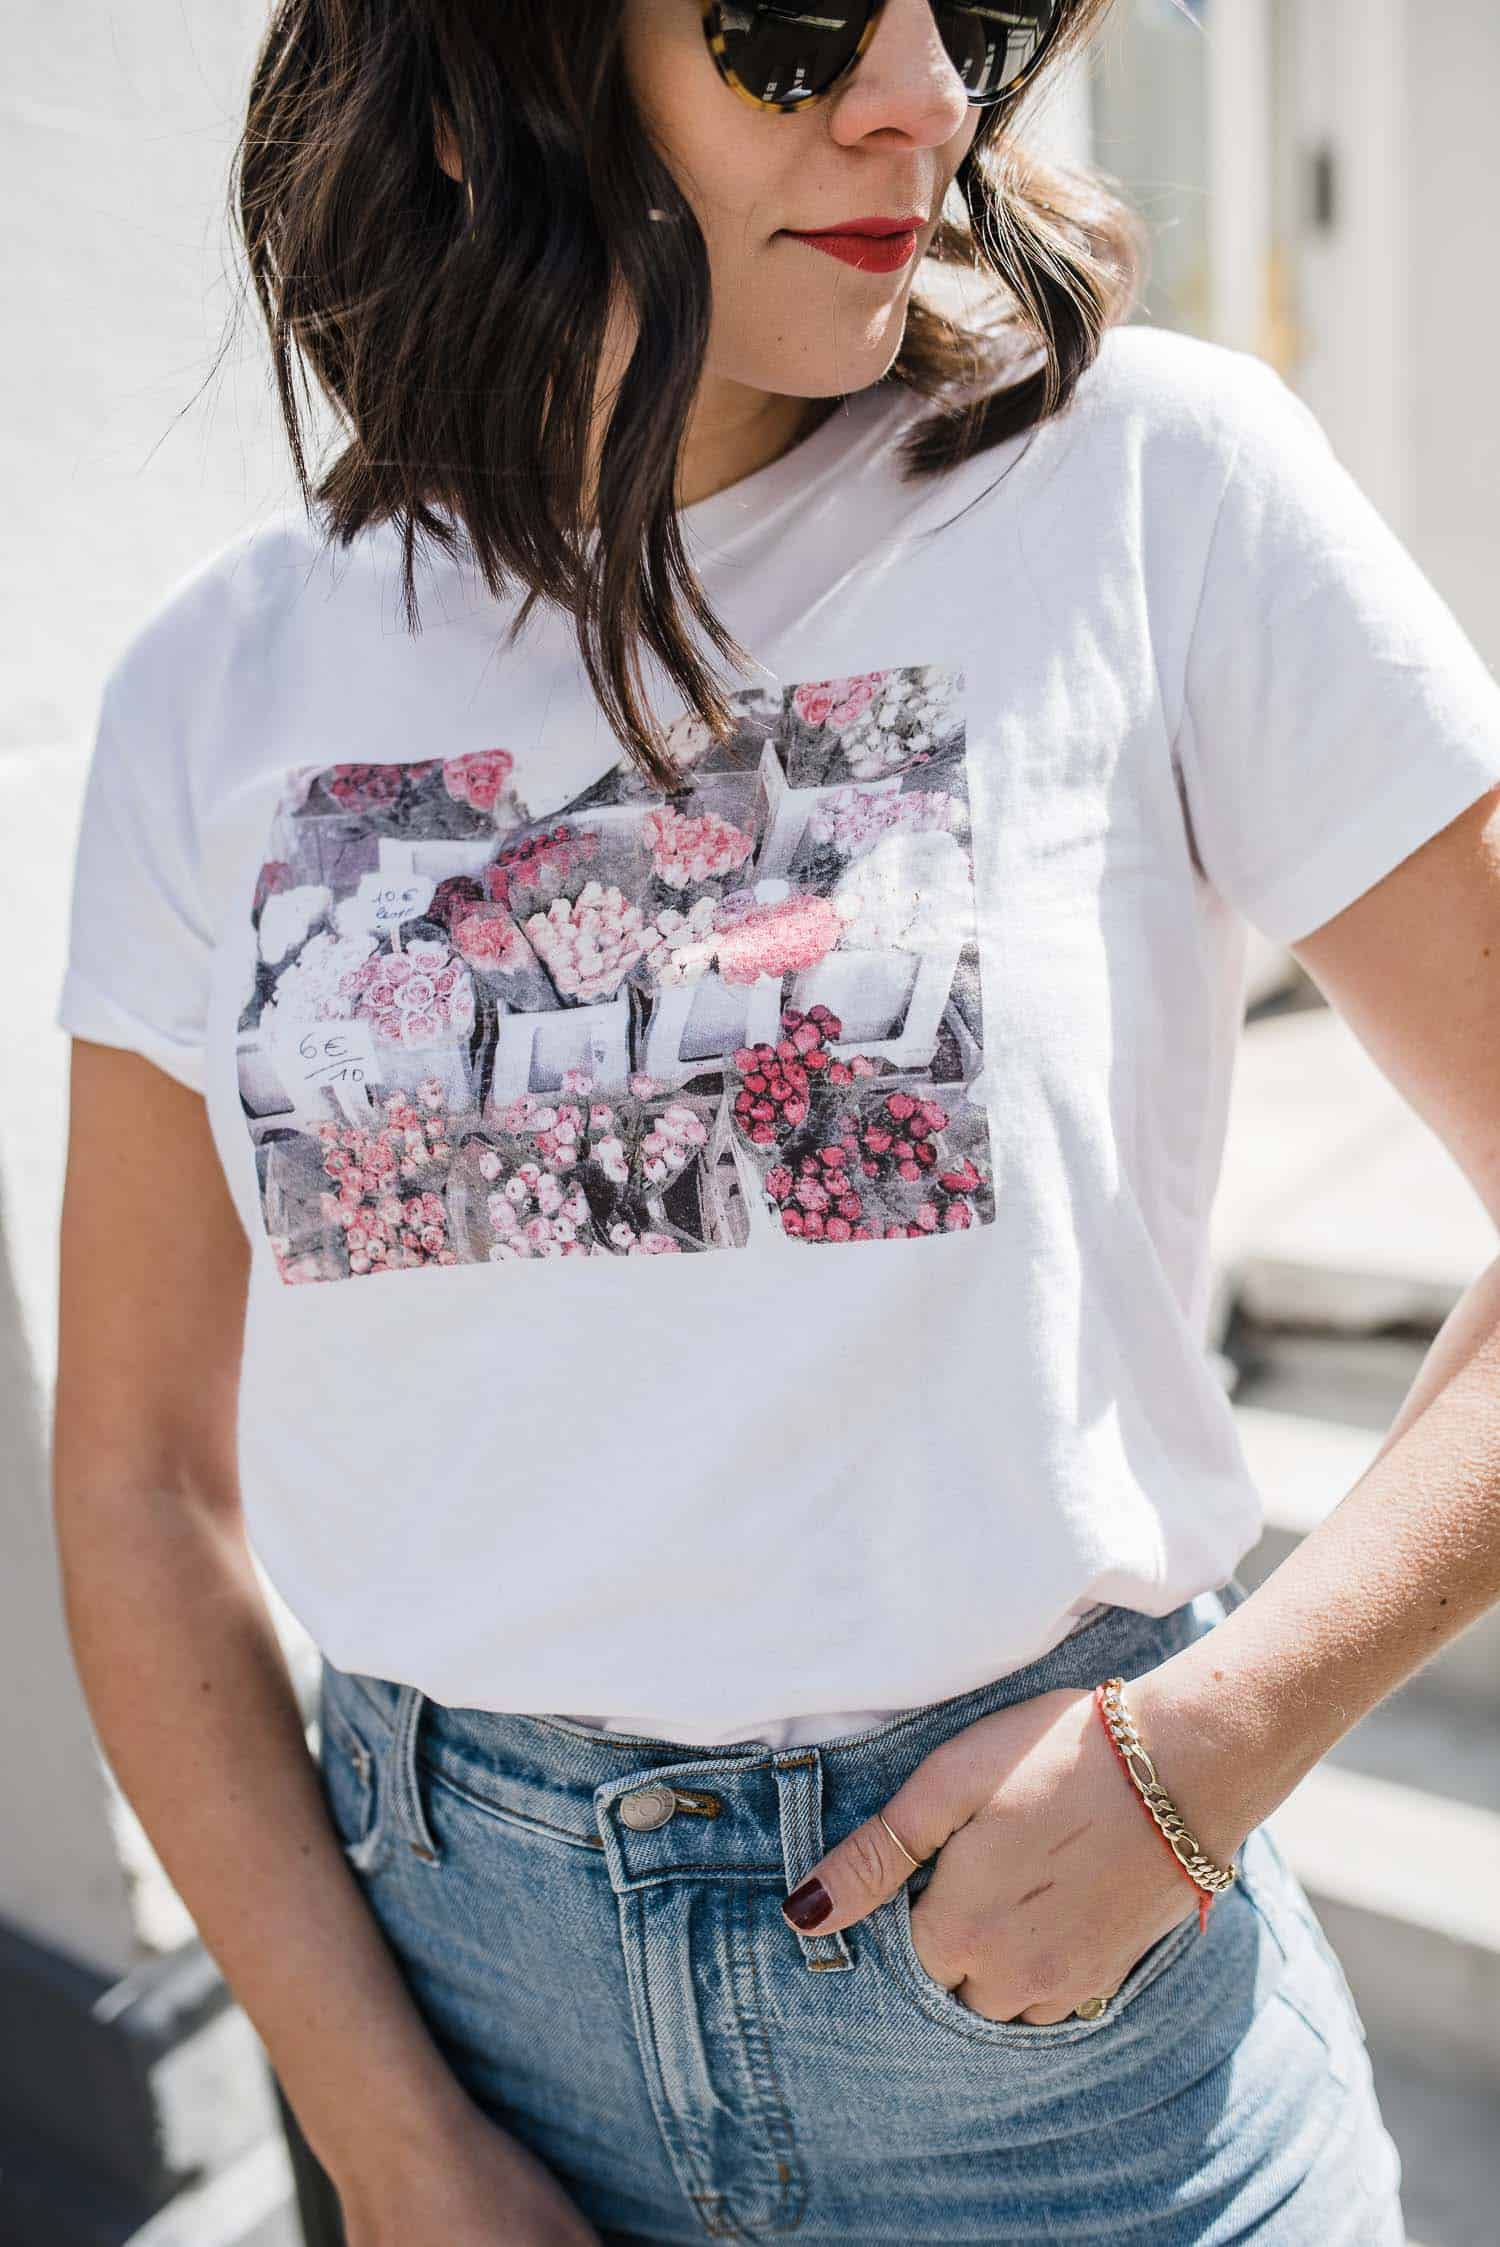 Abercrombie & Fitch Spring Favorites To Shop